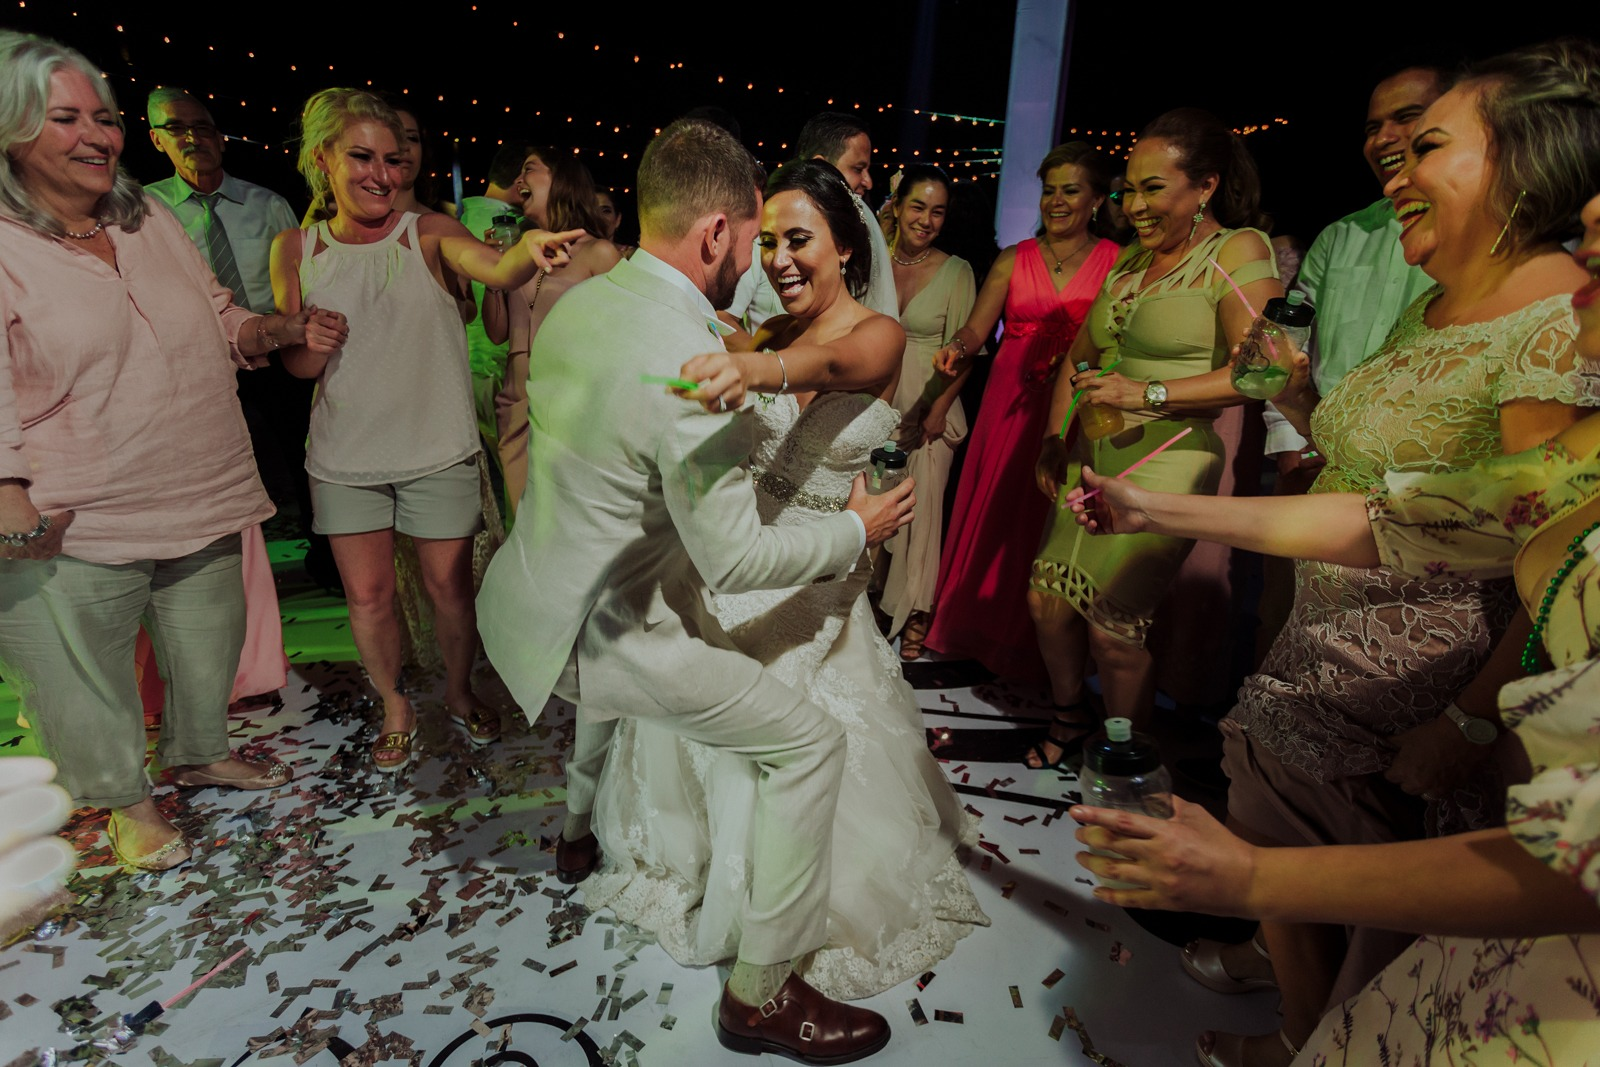 bride-groom-dance-dance floor-party-friends-smile-wedding